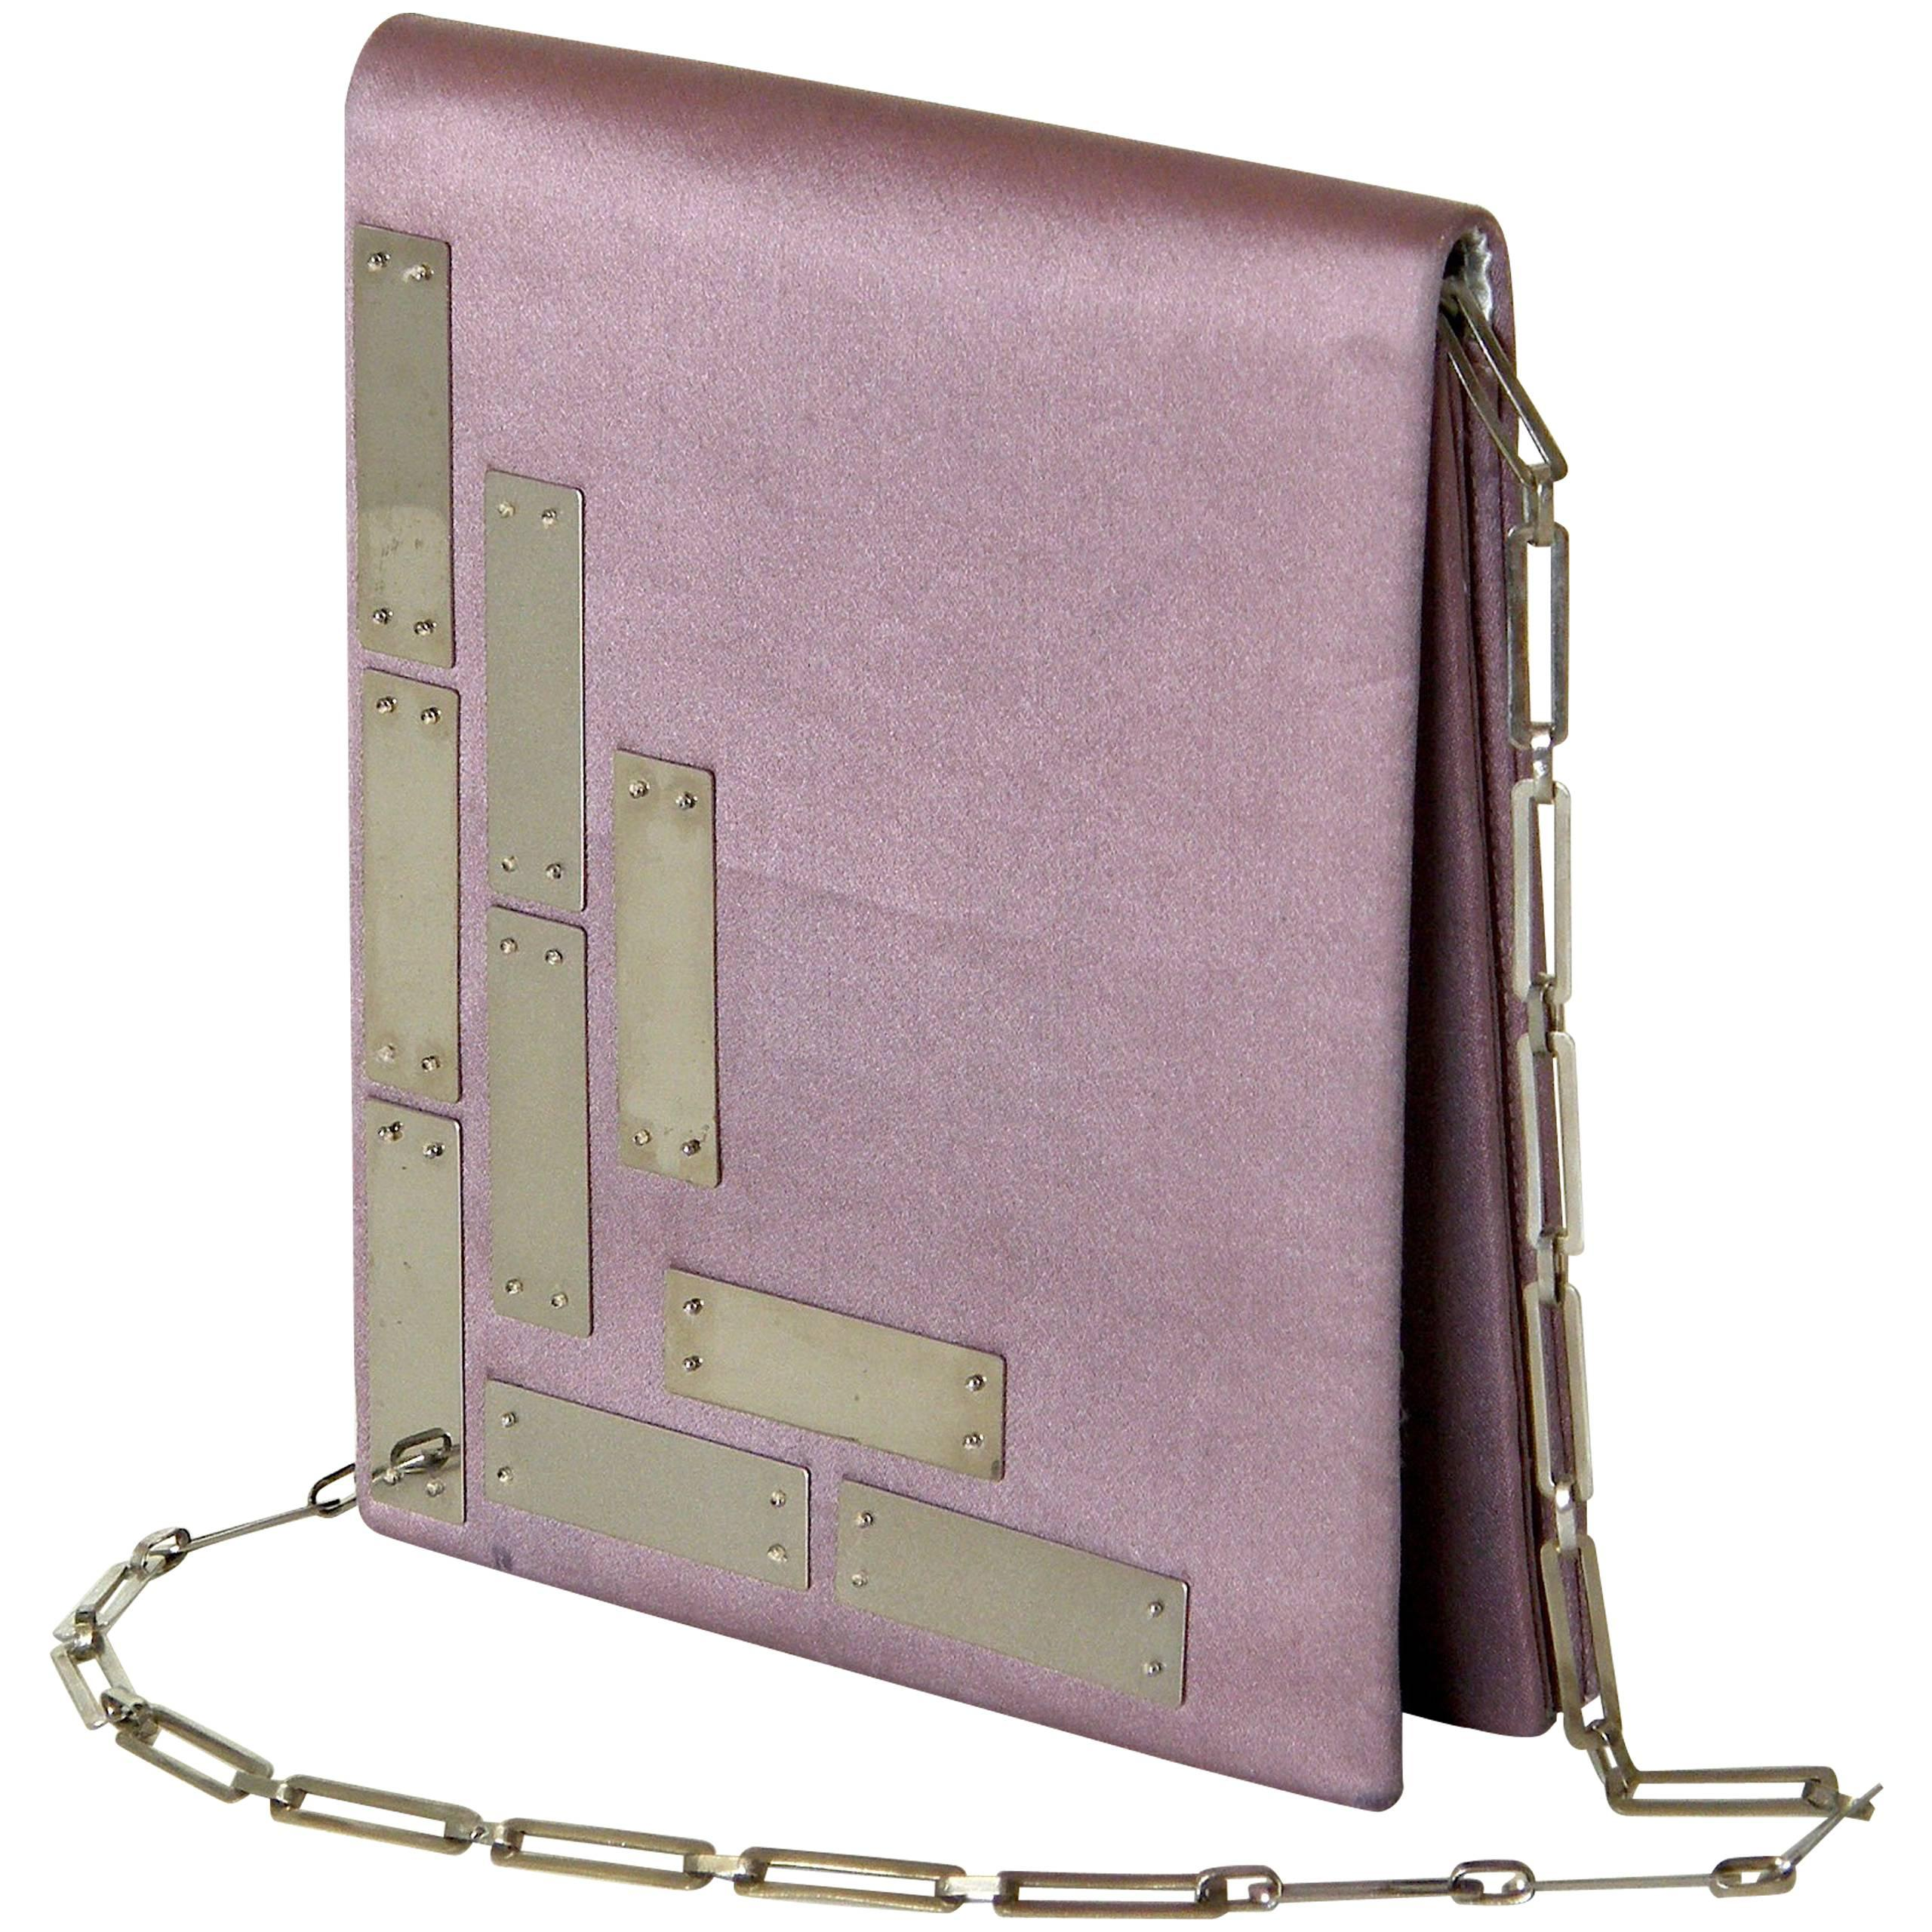 Pierre Cardin Futuristic Silk Shoulder Bag with Metal Panels and Chain Strap